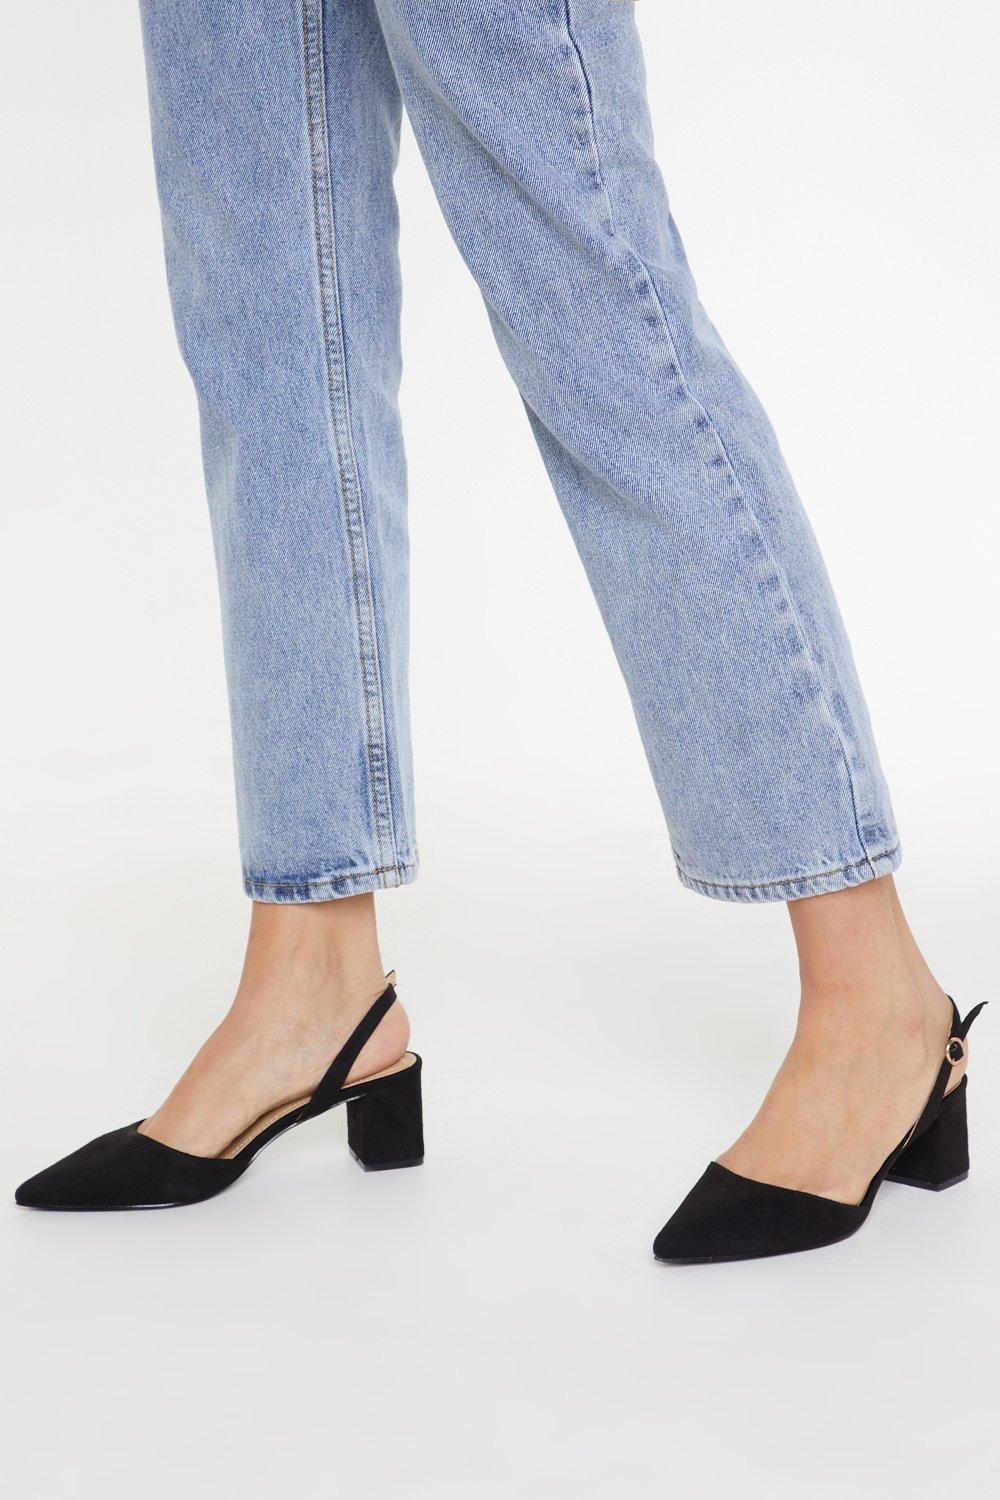 2a8568f641f Immi Suede Low Block Heel Slingback Court | Shop Clothes at Nasty Gal!